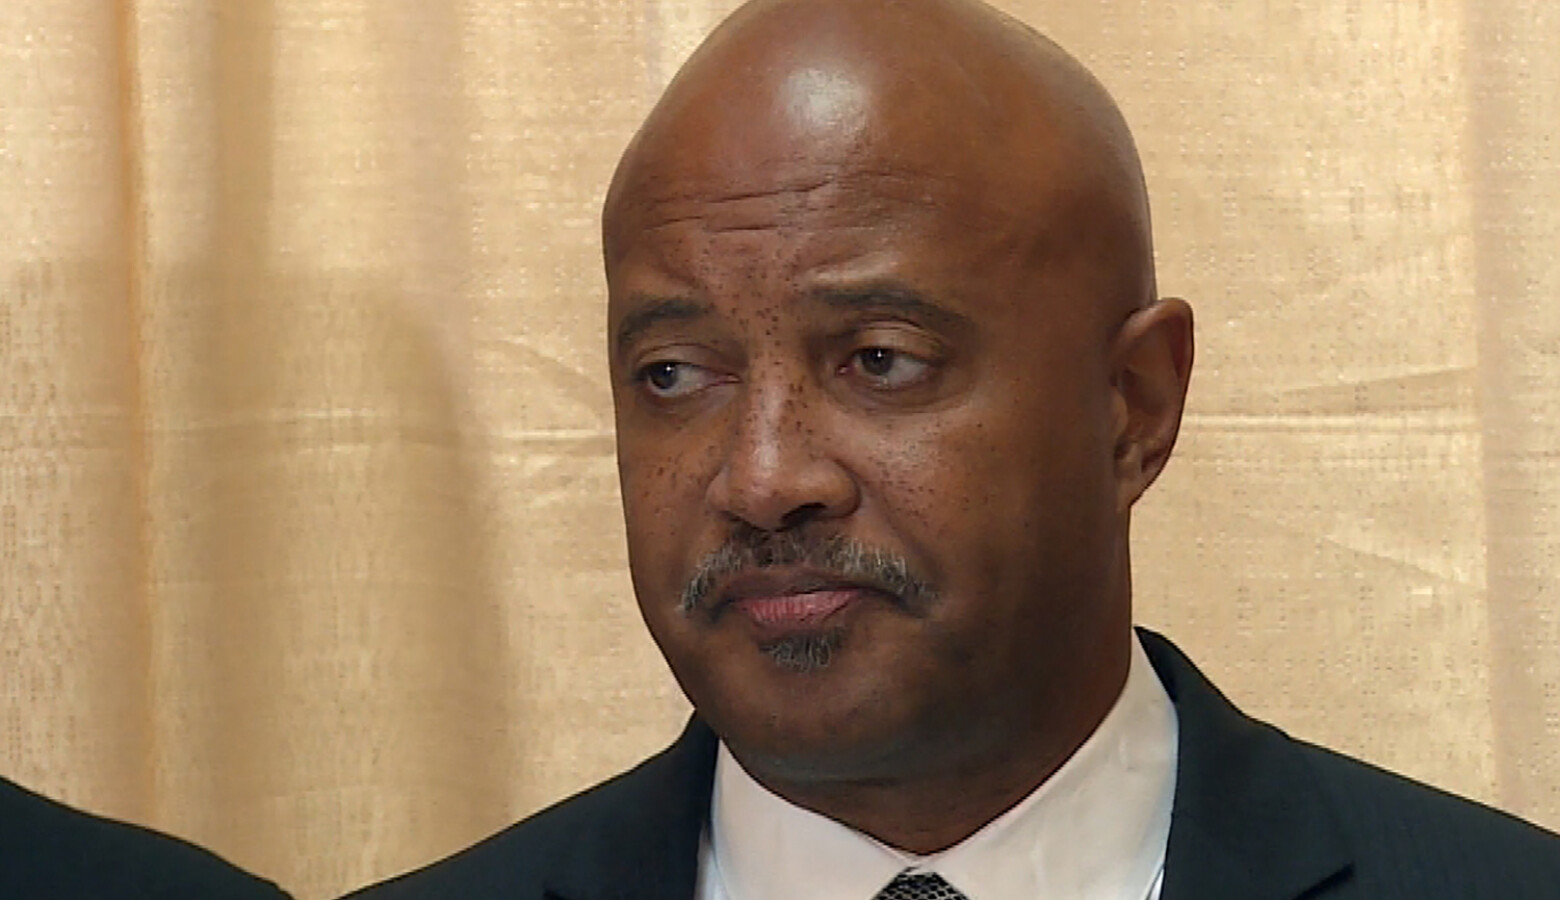 The Indiana Supreme Court suspended Attorney General Curtis Hill's law license for 30 days after it determined he criminally battered four women. (WFIU/WTIU)